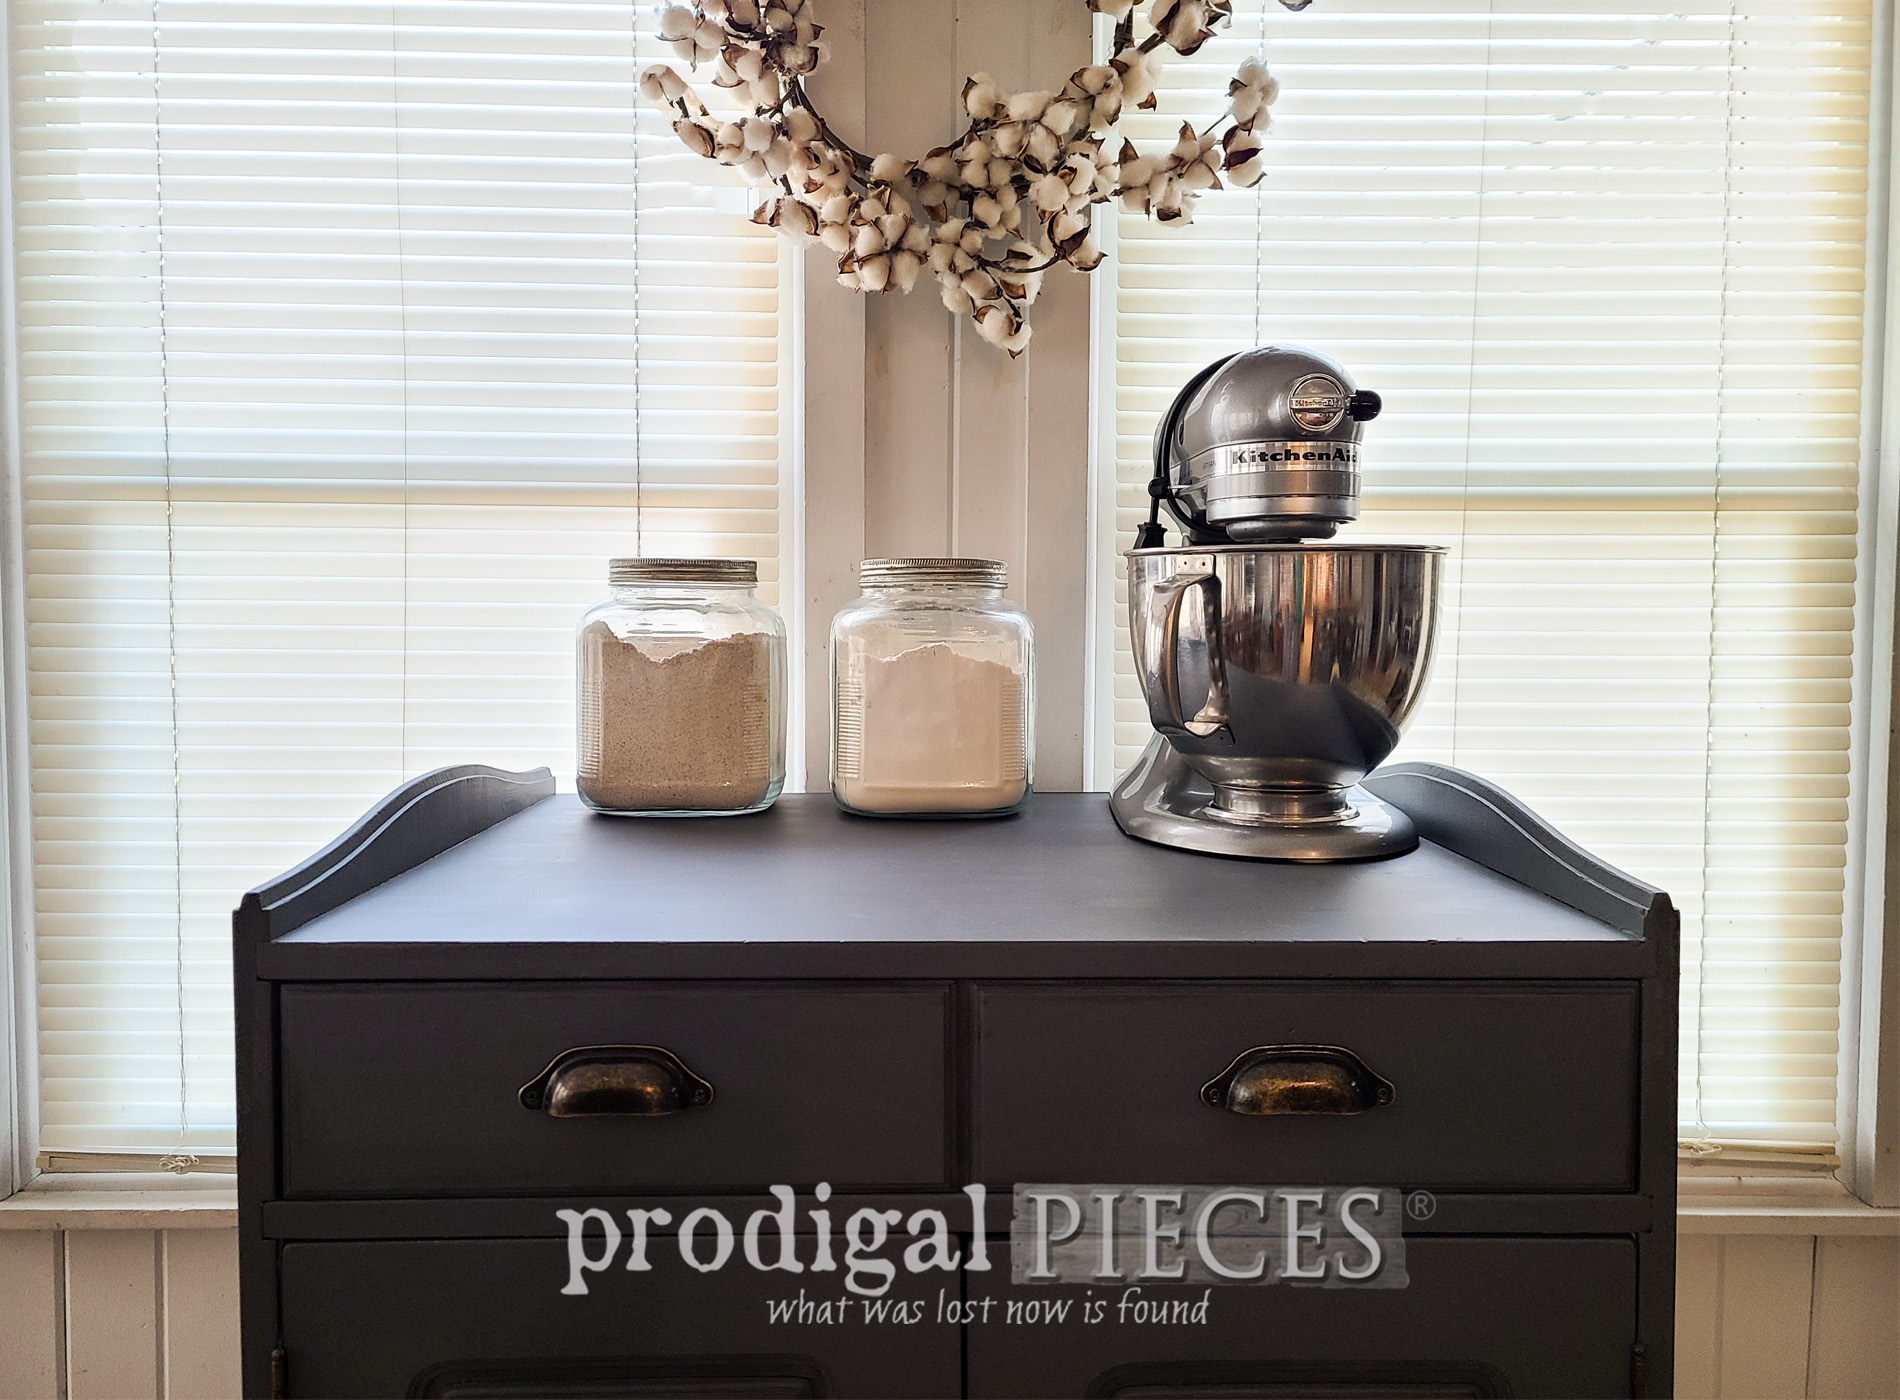 Featured Farmhouse Baking Cabinet by Larissa of Prodigal Pieces | prodigalpieces.com #prodigalpieces #farmhouse #furniture #diy #home #homedecor #kitchen #storage